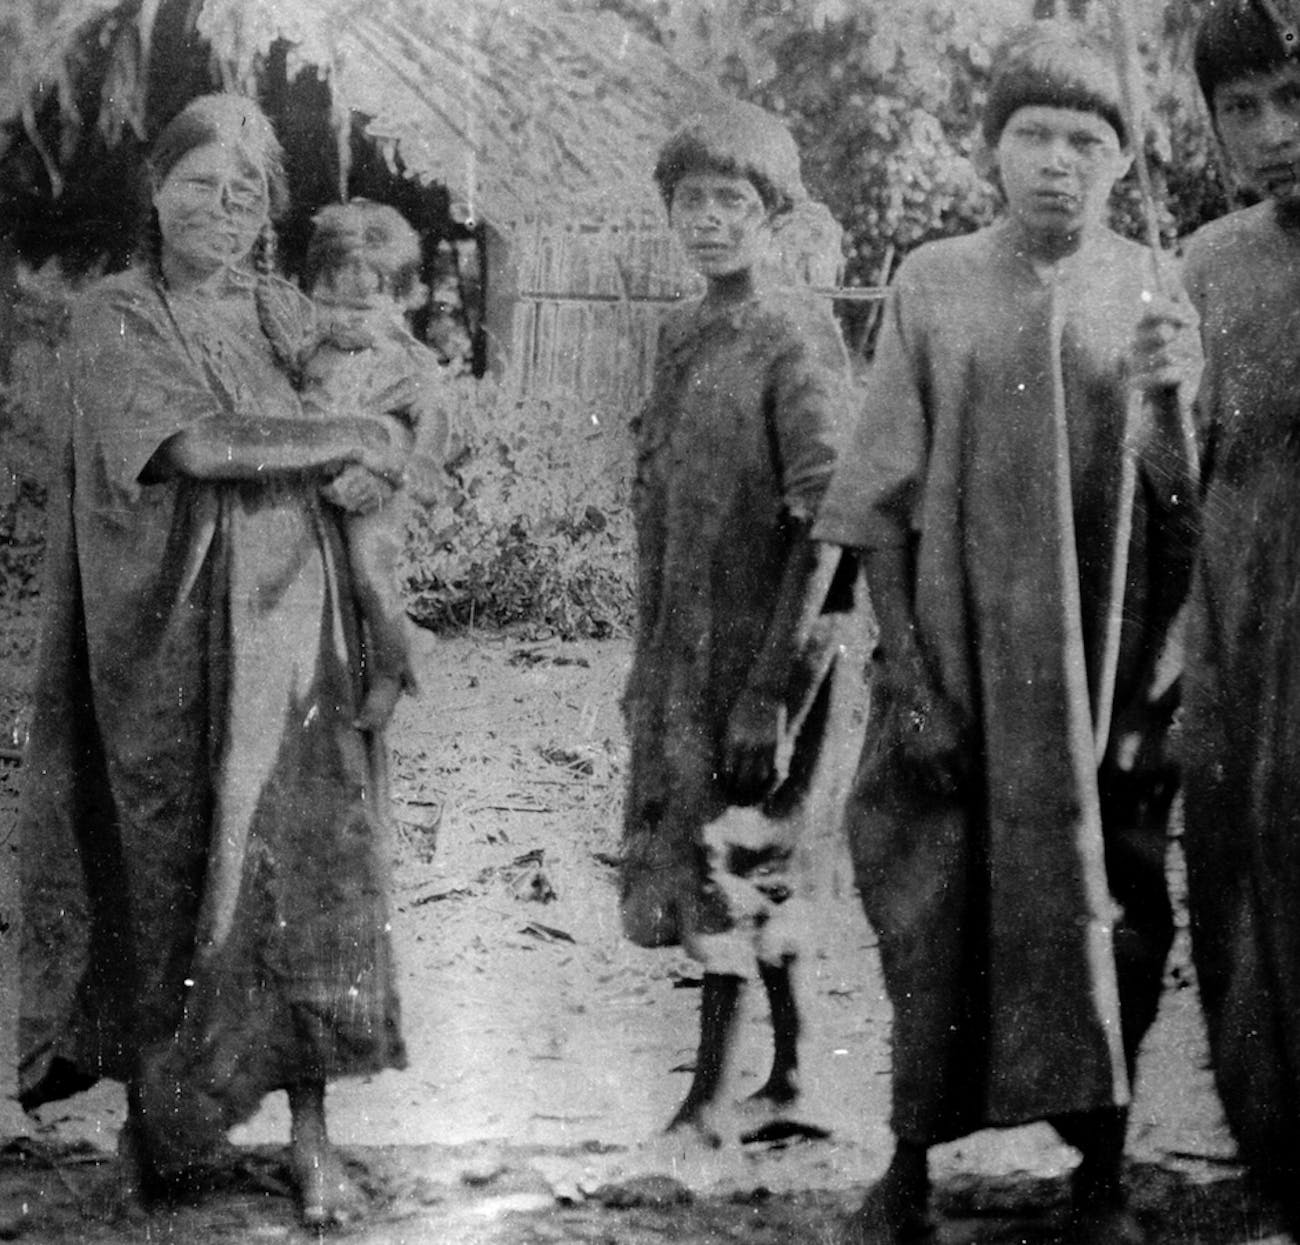 This photo, taken in 1912 during anthropologist Erland Nordenskiöld's trip to Bolivia, shows a group of Tsimané people.